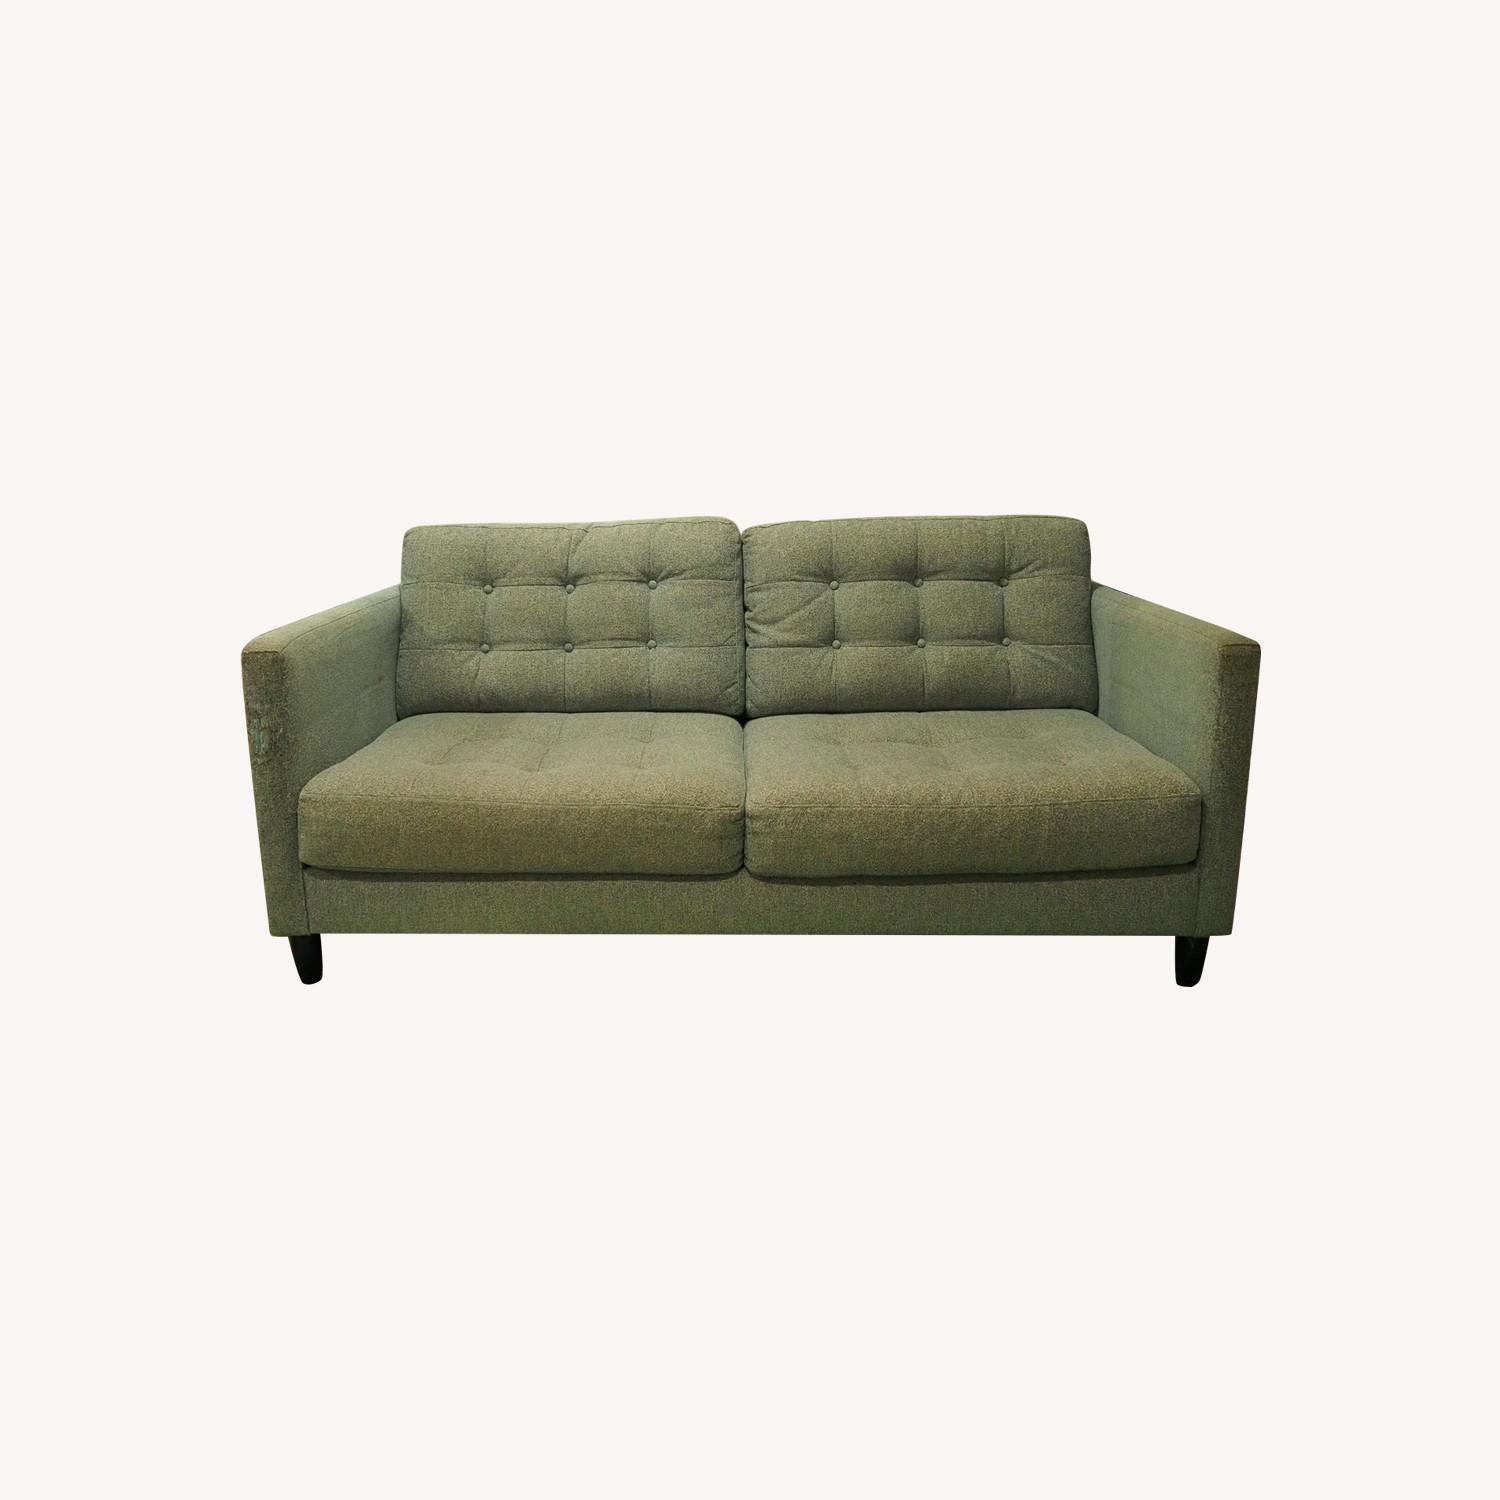 Younger Co The James Collection Apartment Sofa - image-0